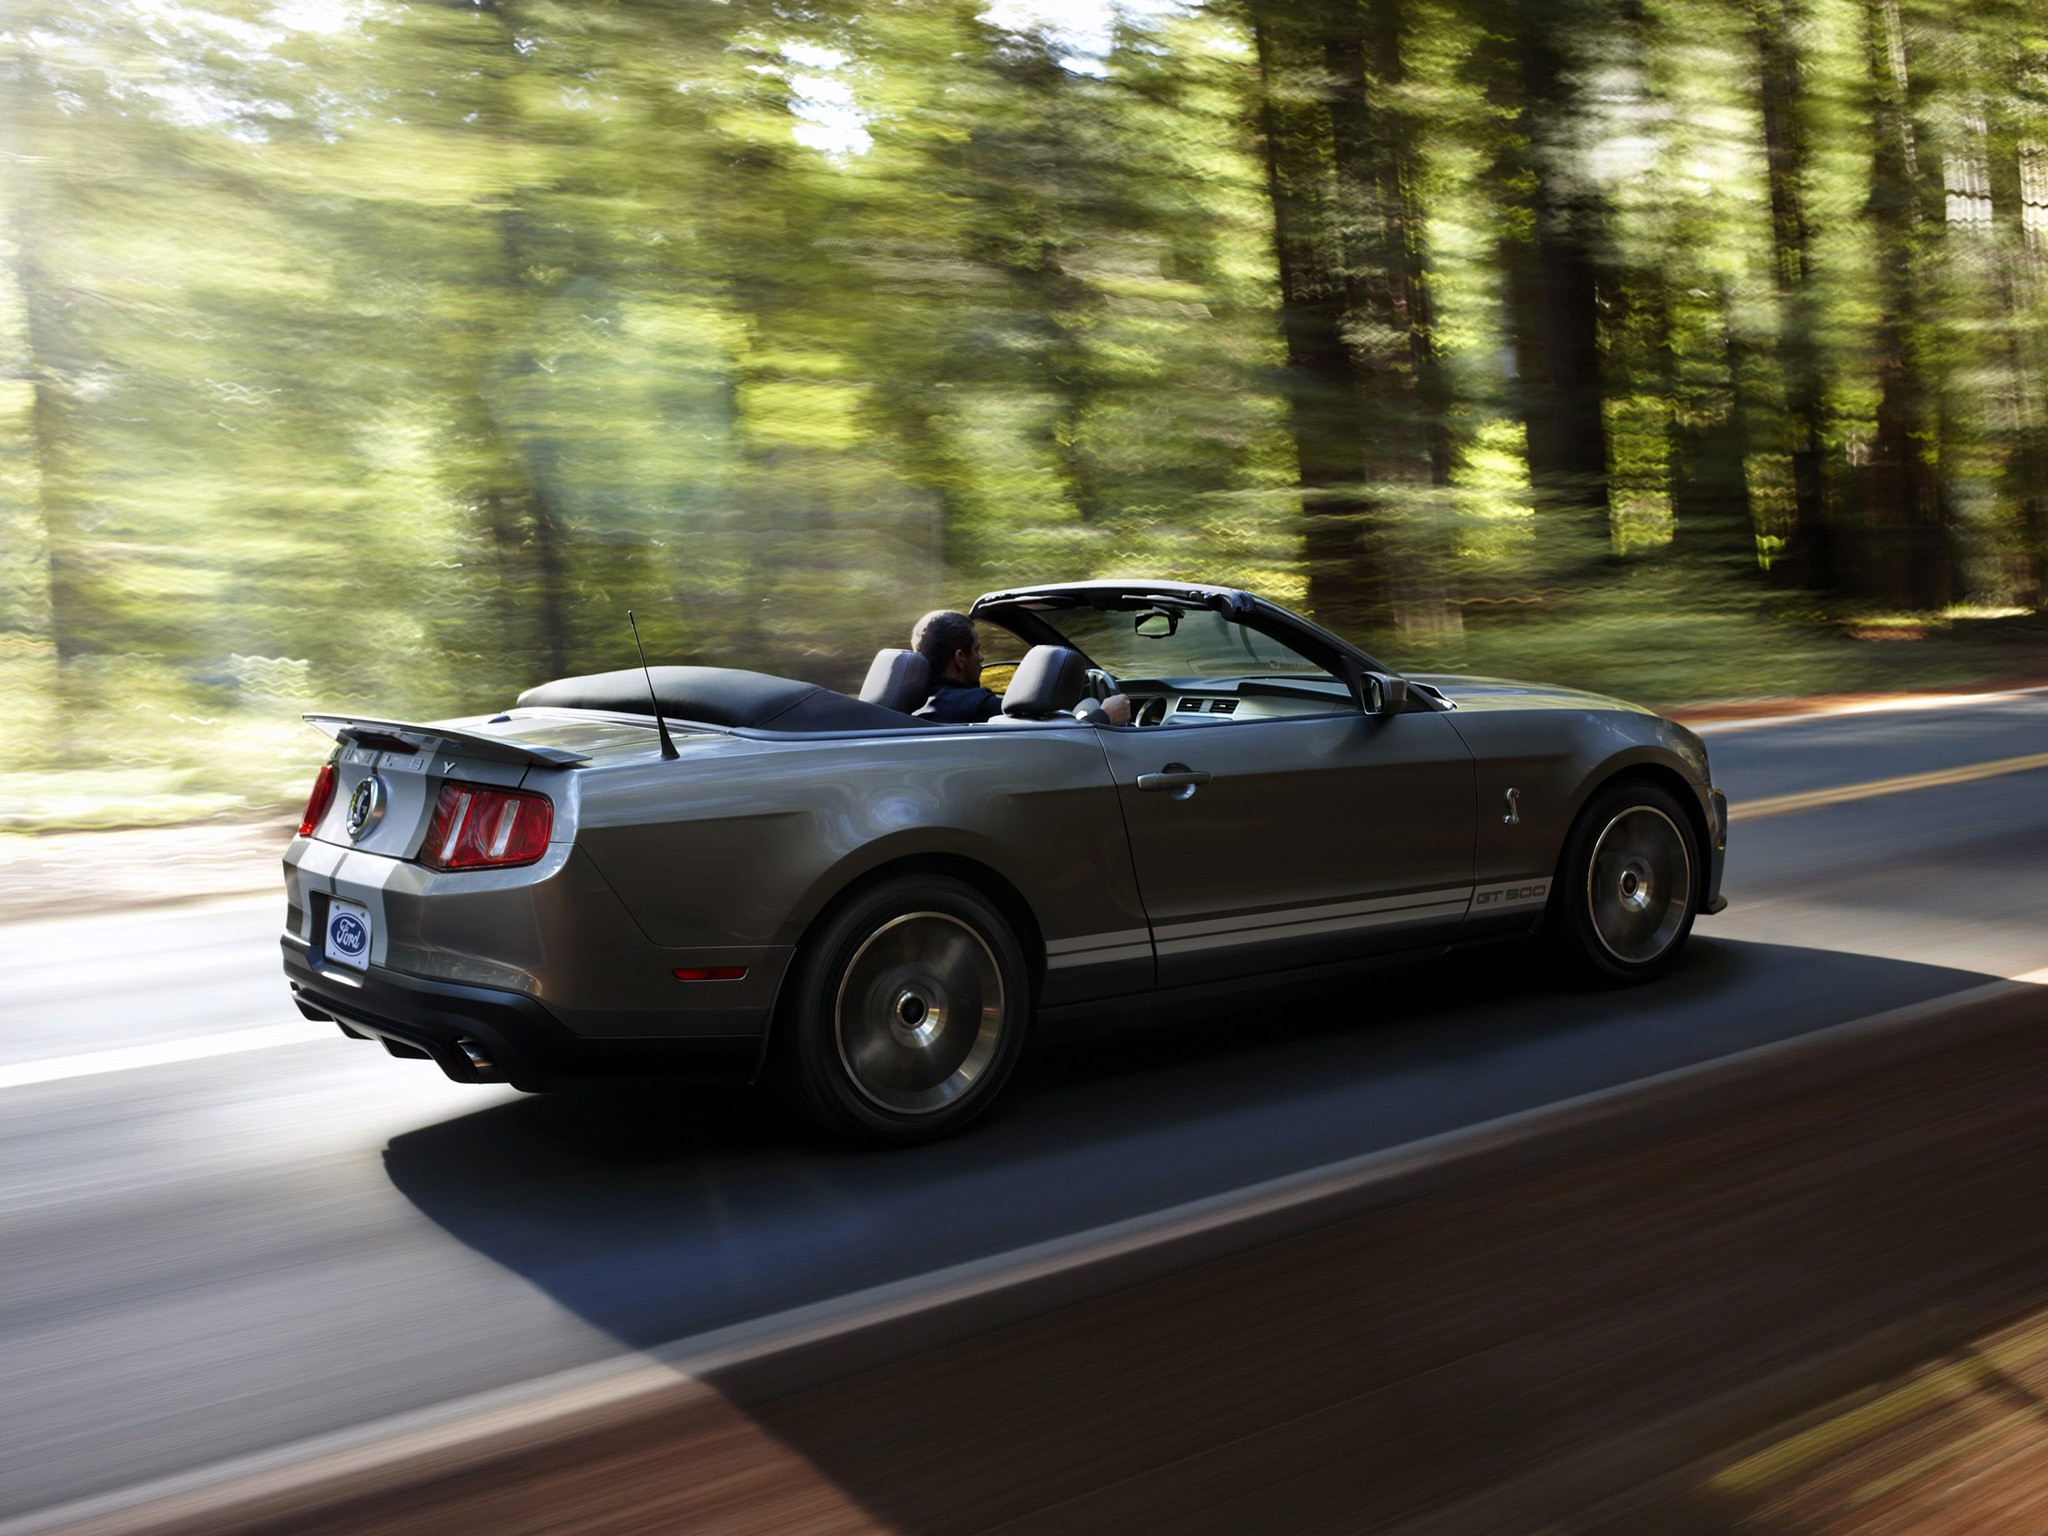 Ford Mustang Shelby Gt Convertible on 500 Cadillac Engine Horsepower